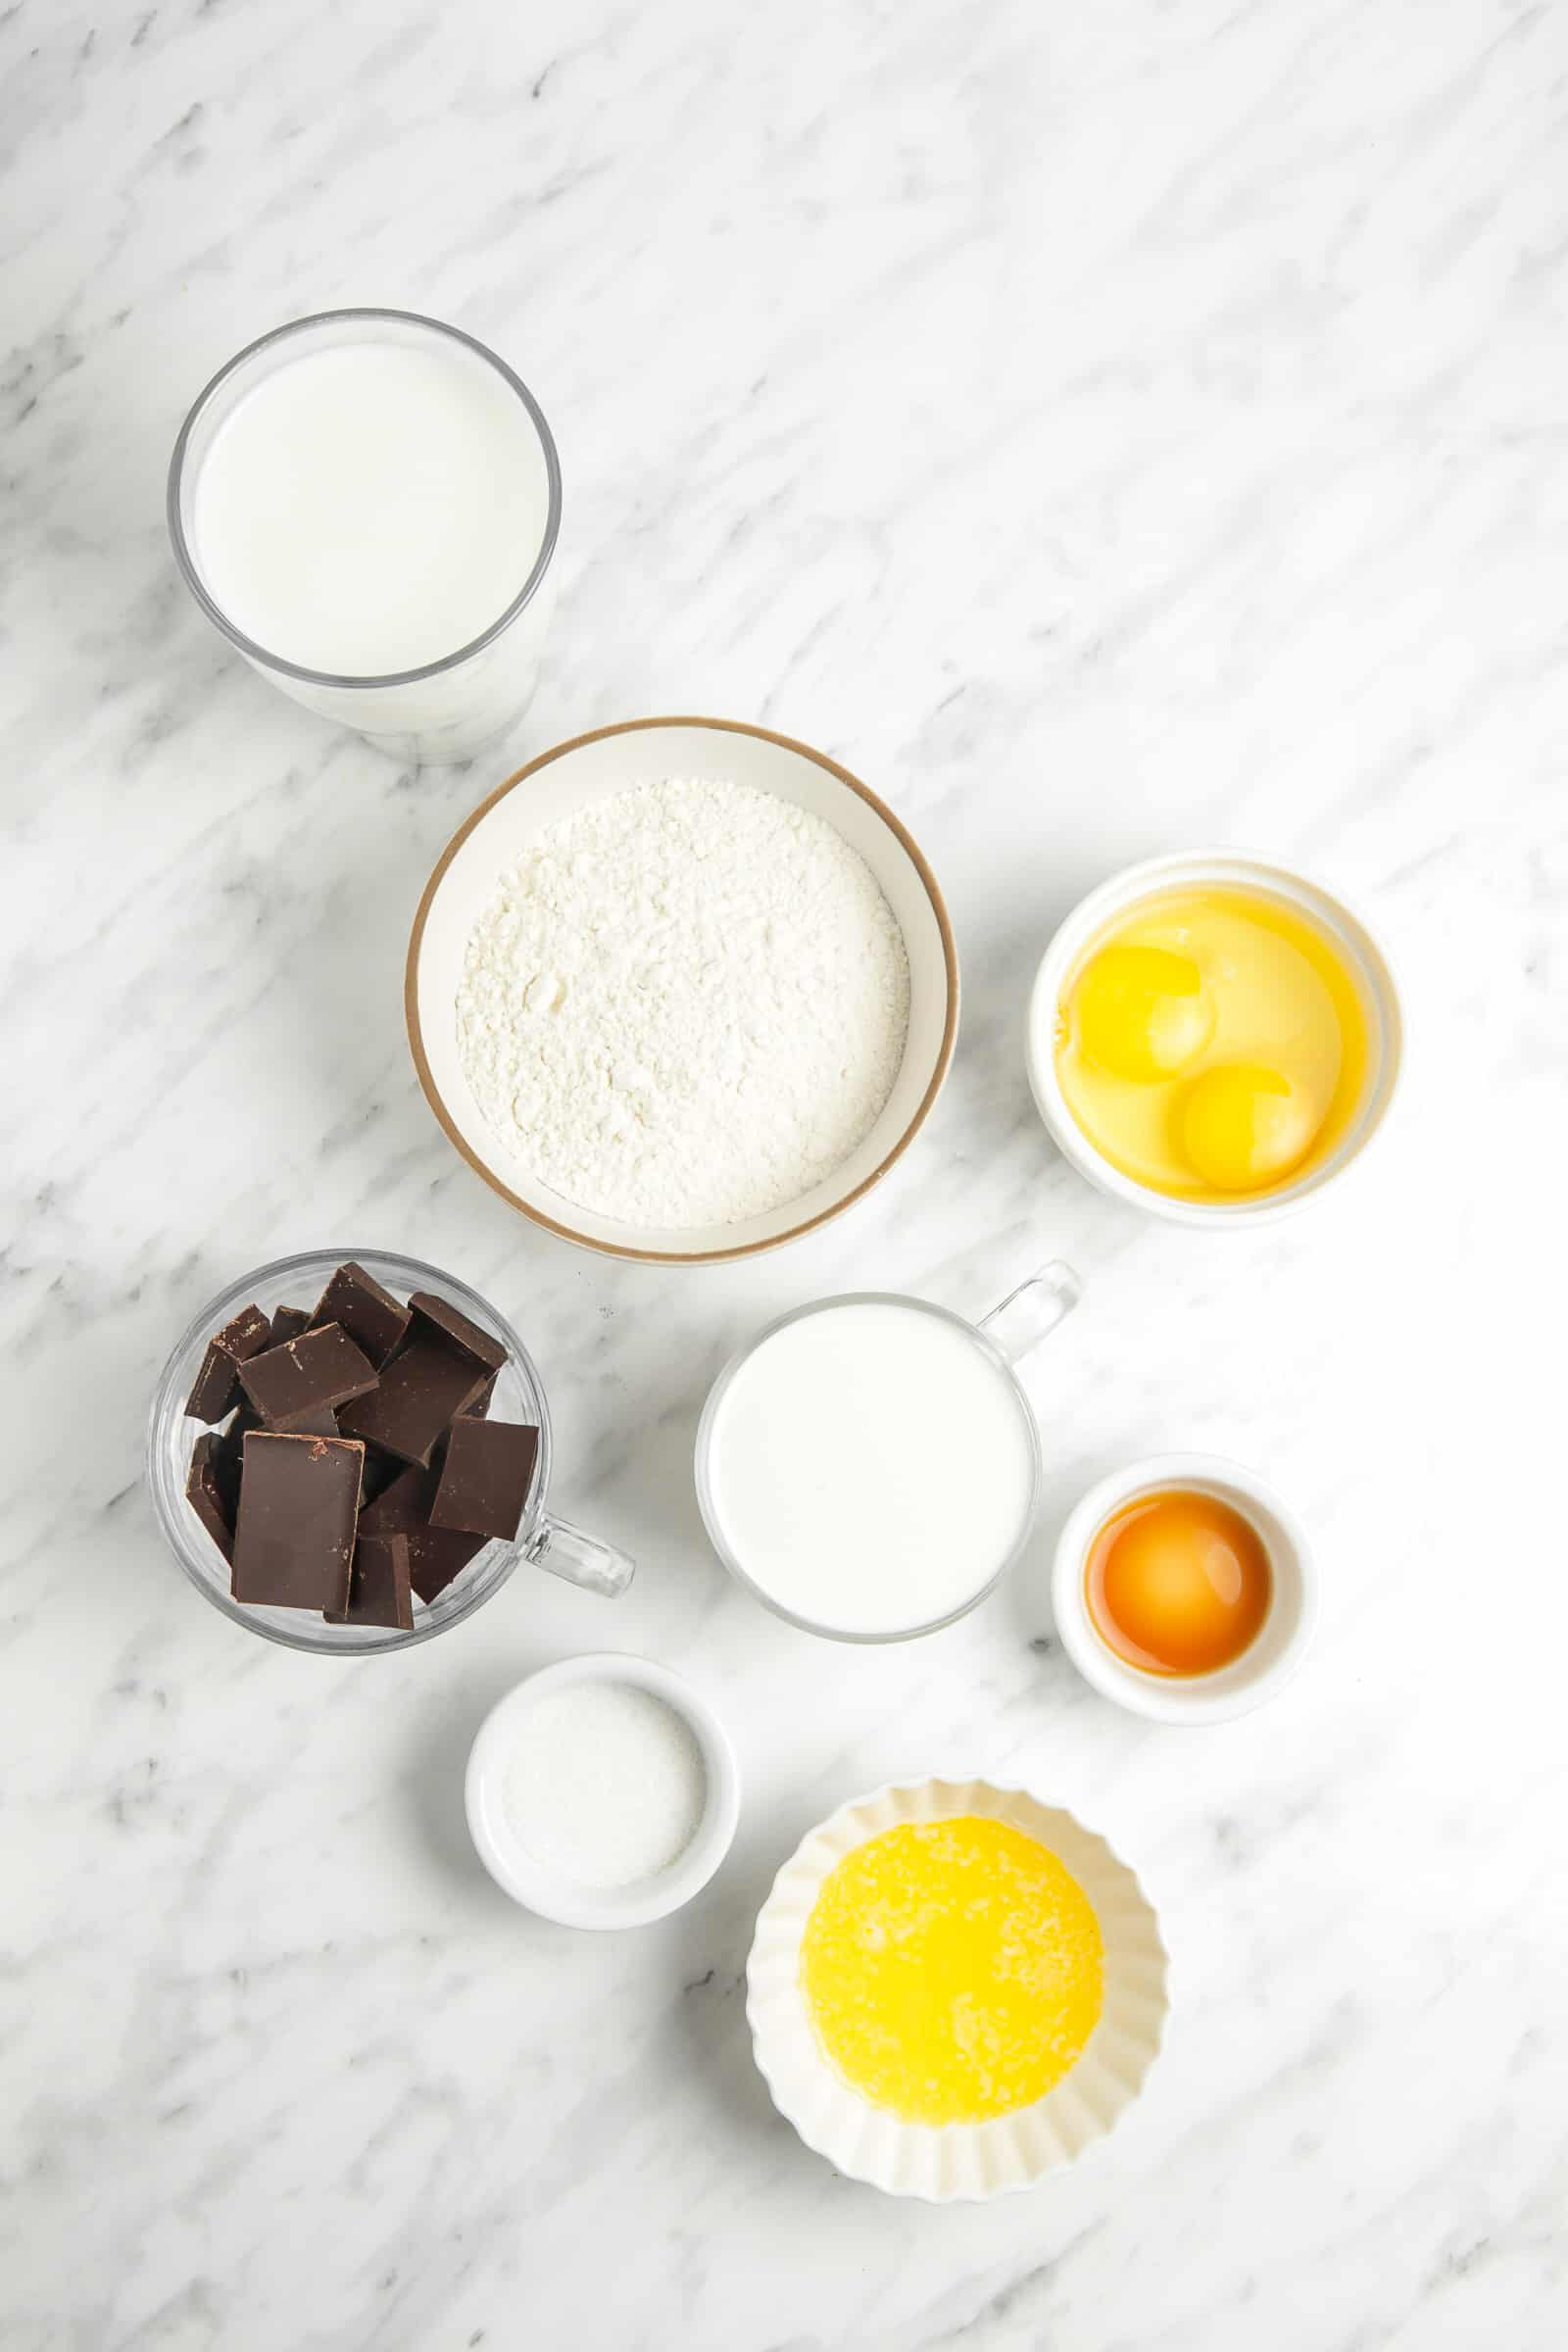 ingredients for french crepe recipe